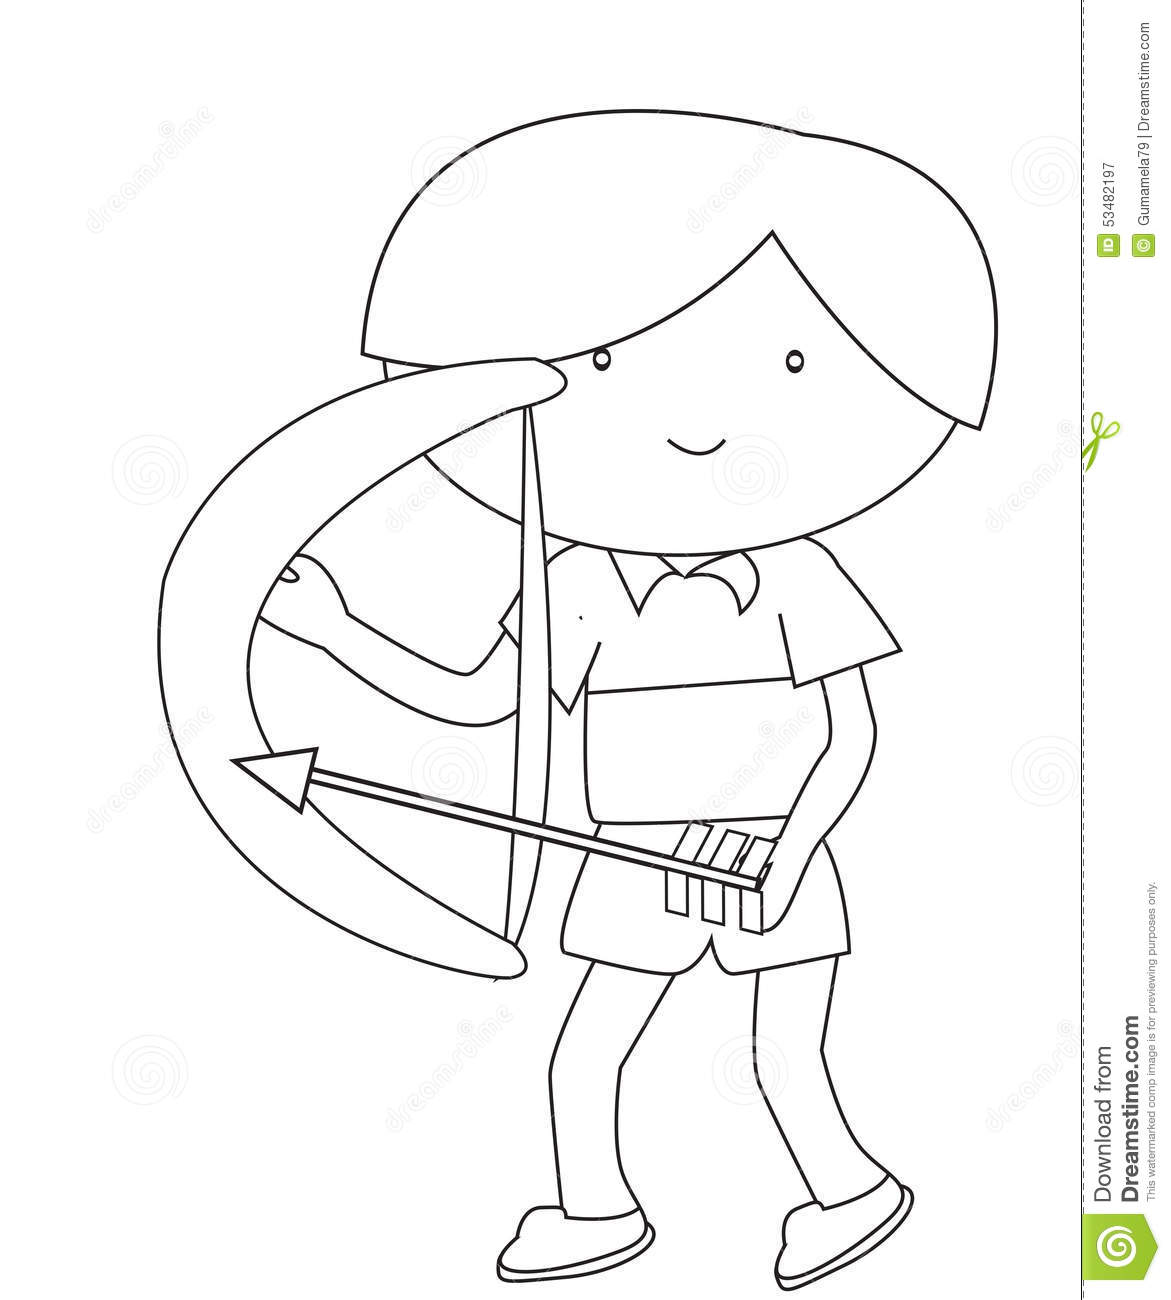 boy with a bow and arrow coloring page stock illustration image